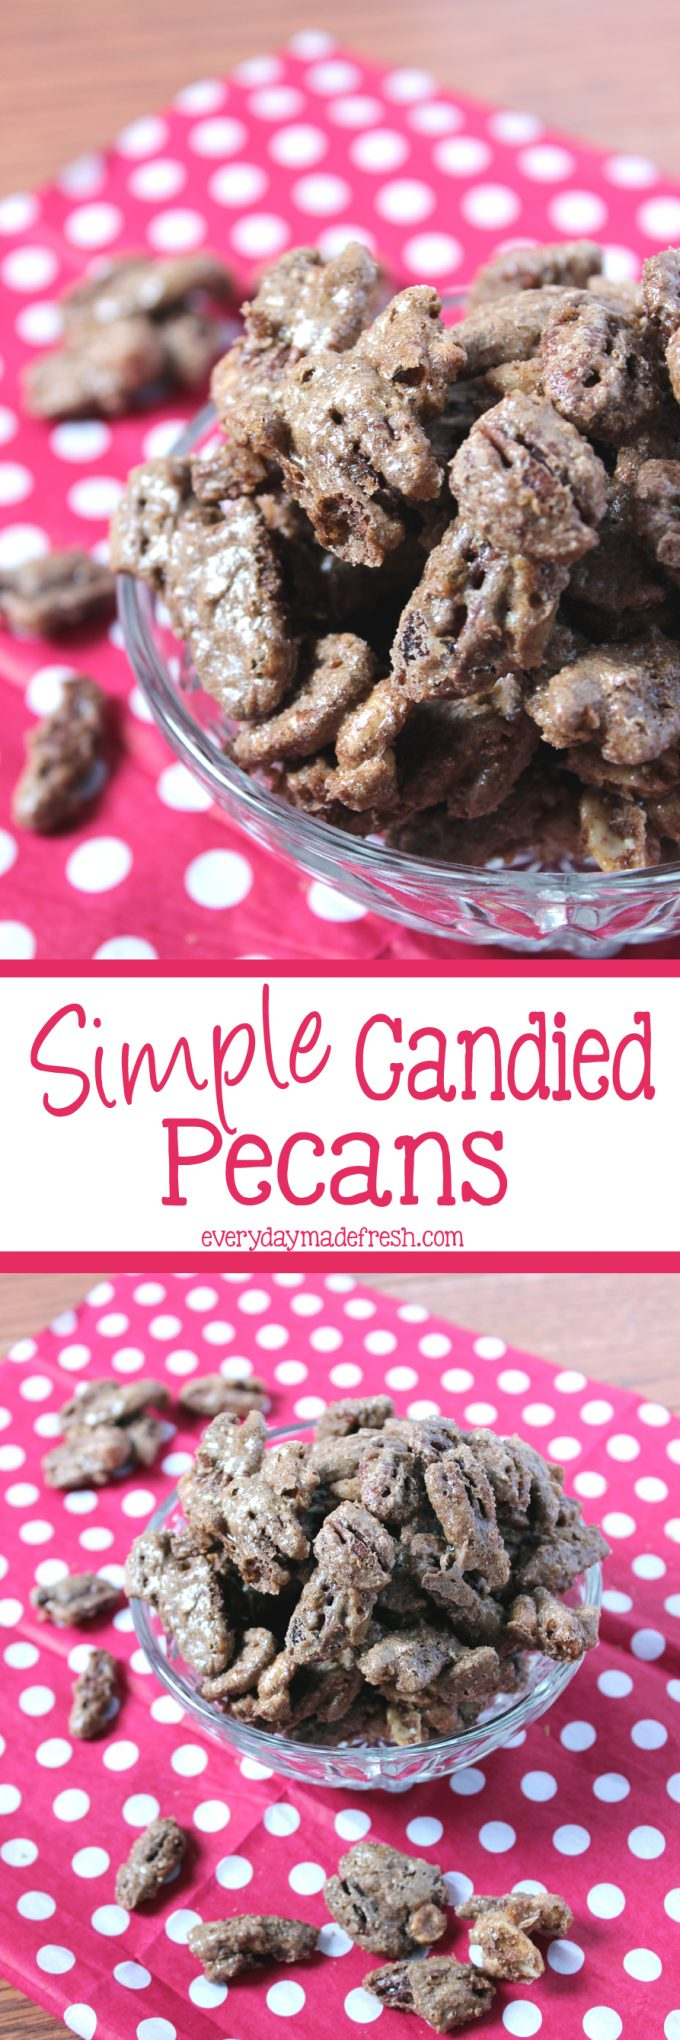 You won't believe how simple these Simple Candied Pecans are to make, using only 5 ingredients!   EverydayMadeFresh.com